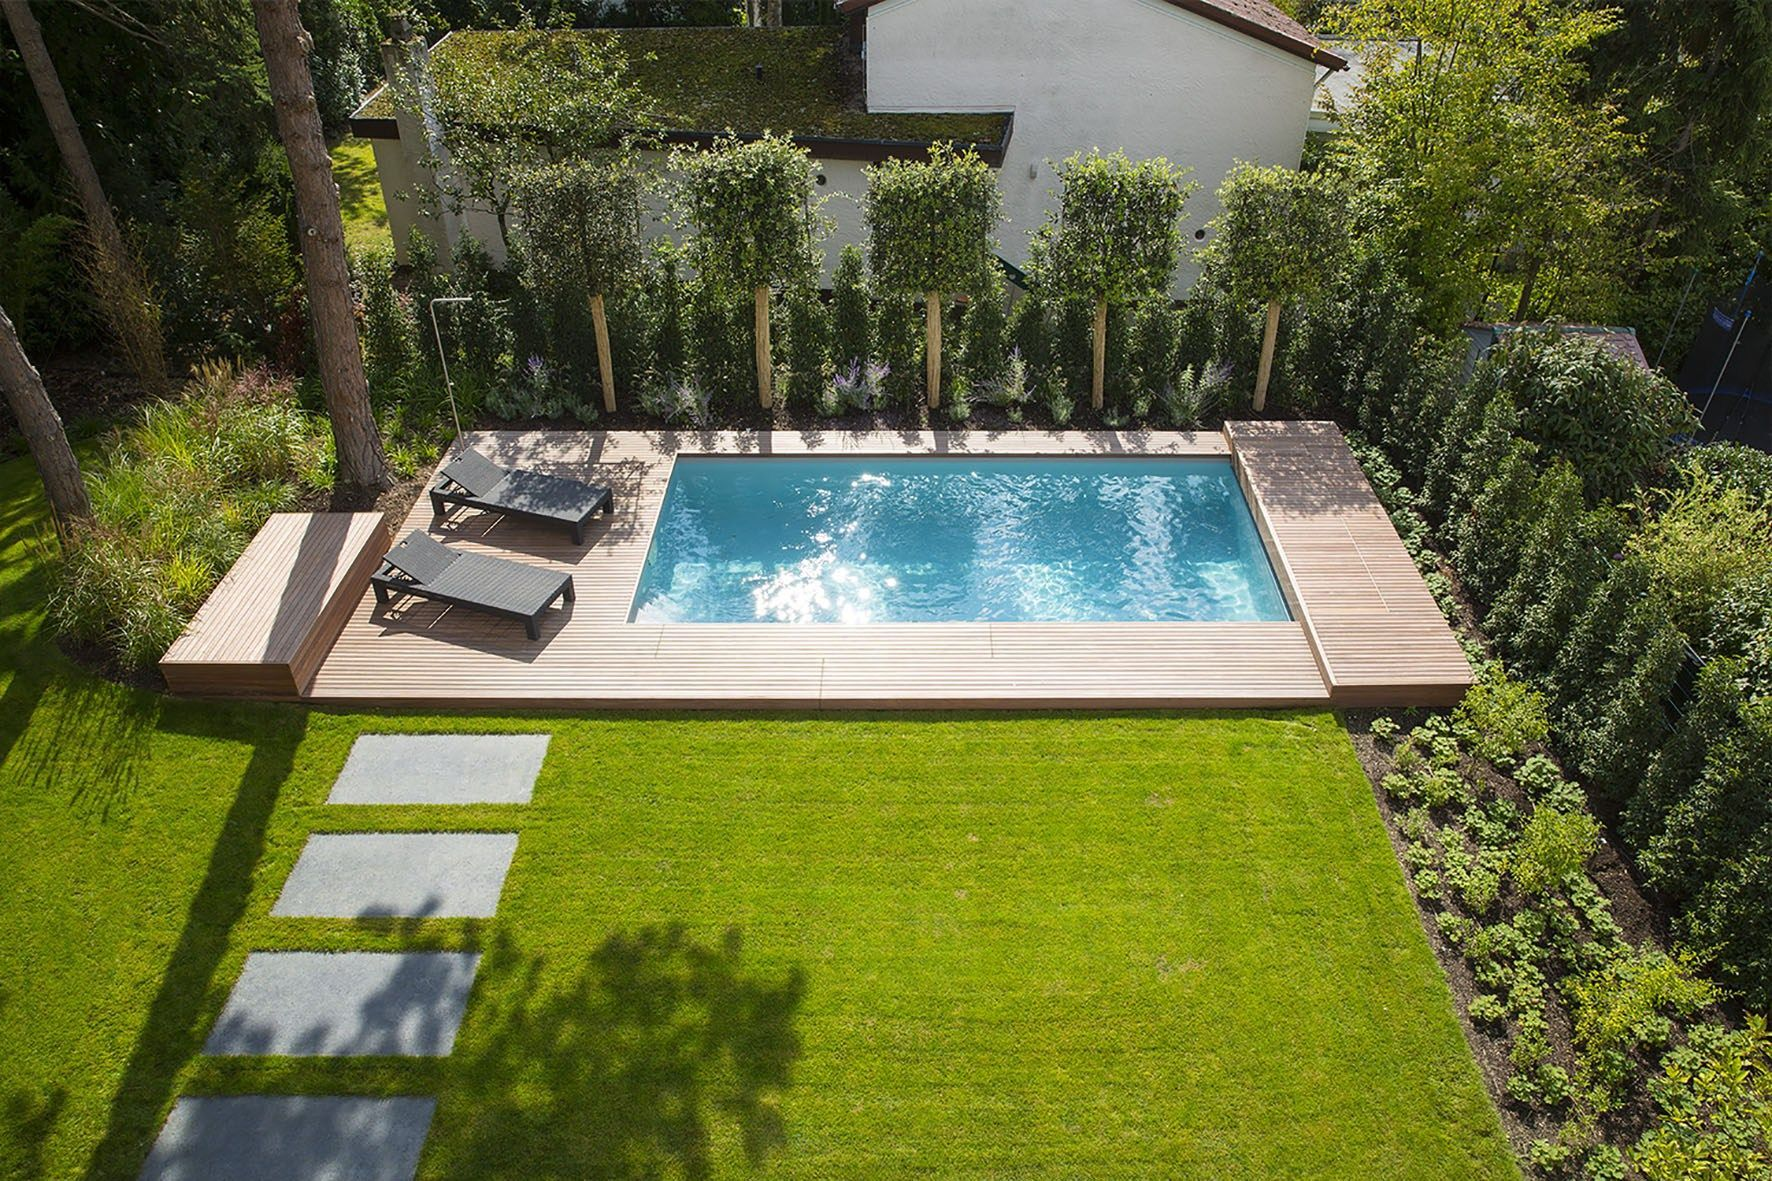 27 Small Pool Ideas to Freshen your Summer (Inground, Above ground